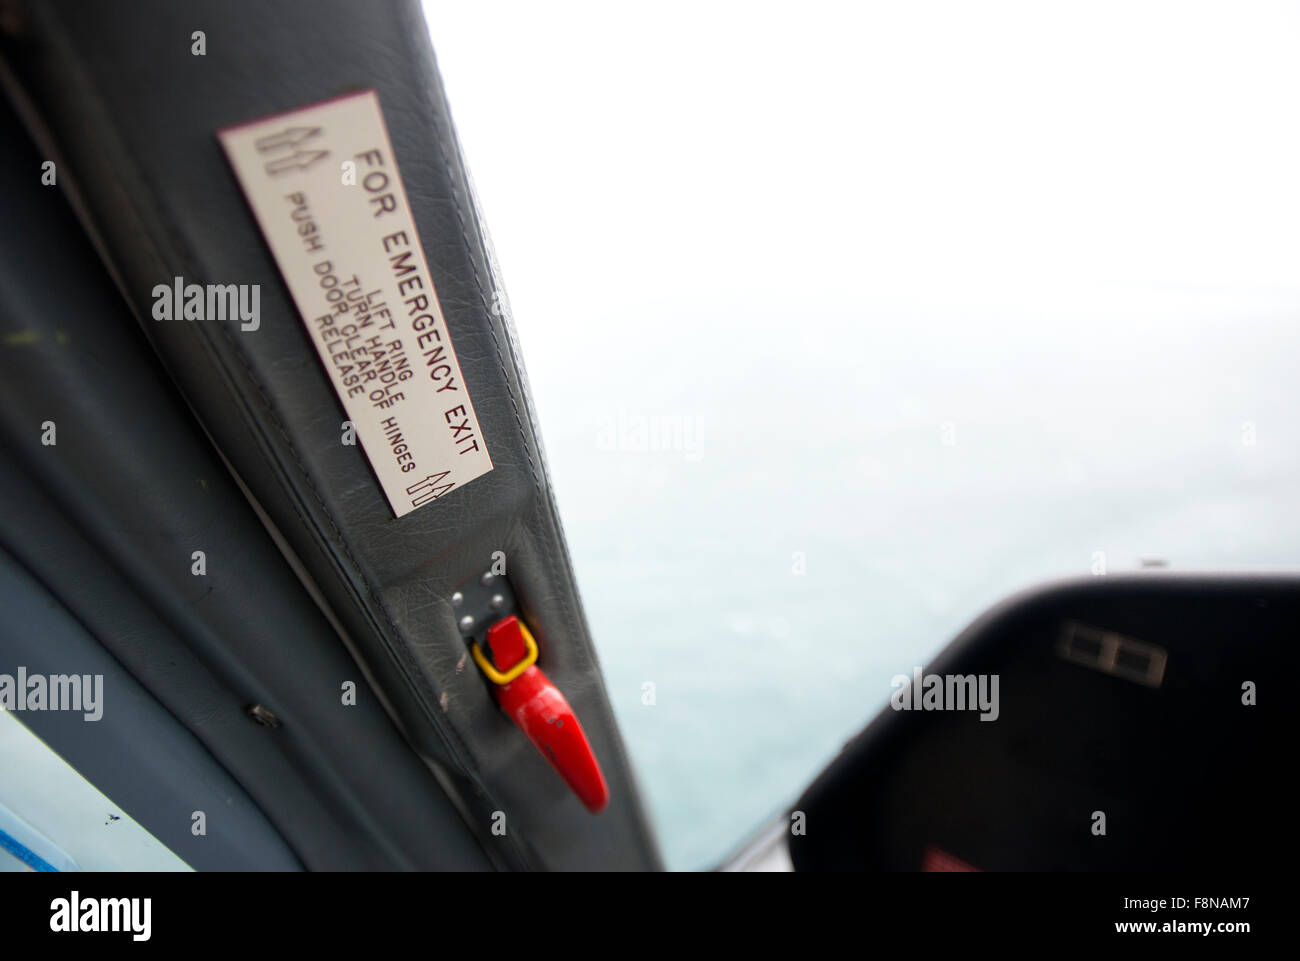 Emergency exit in a helicopter cockpit, on the shuttle flight to Lundy Island - Stock Image